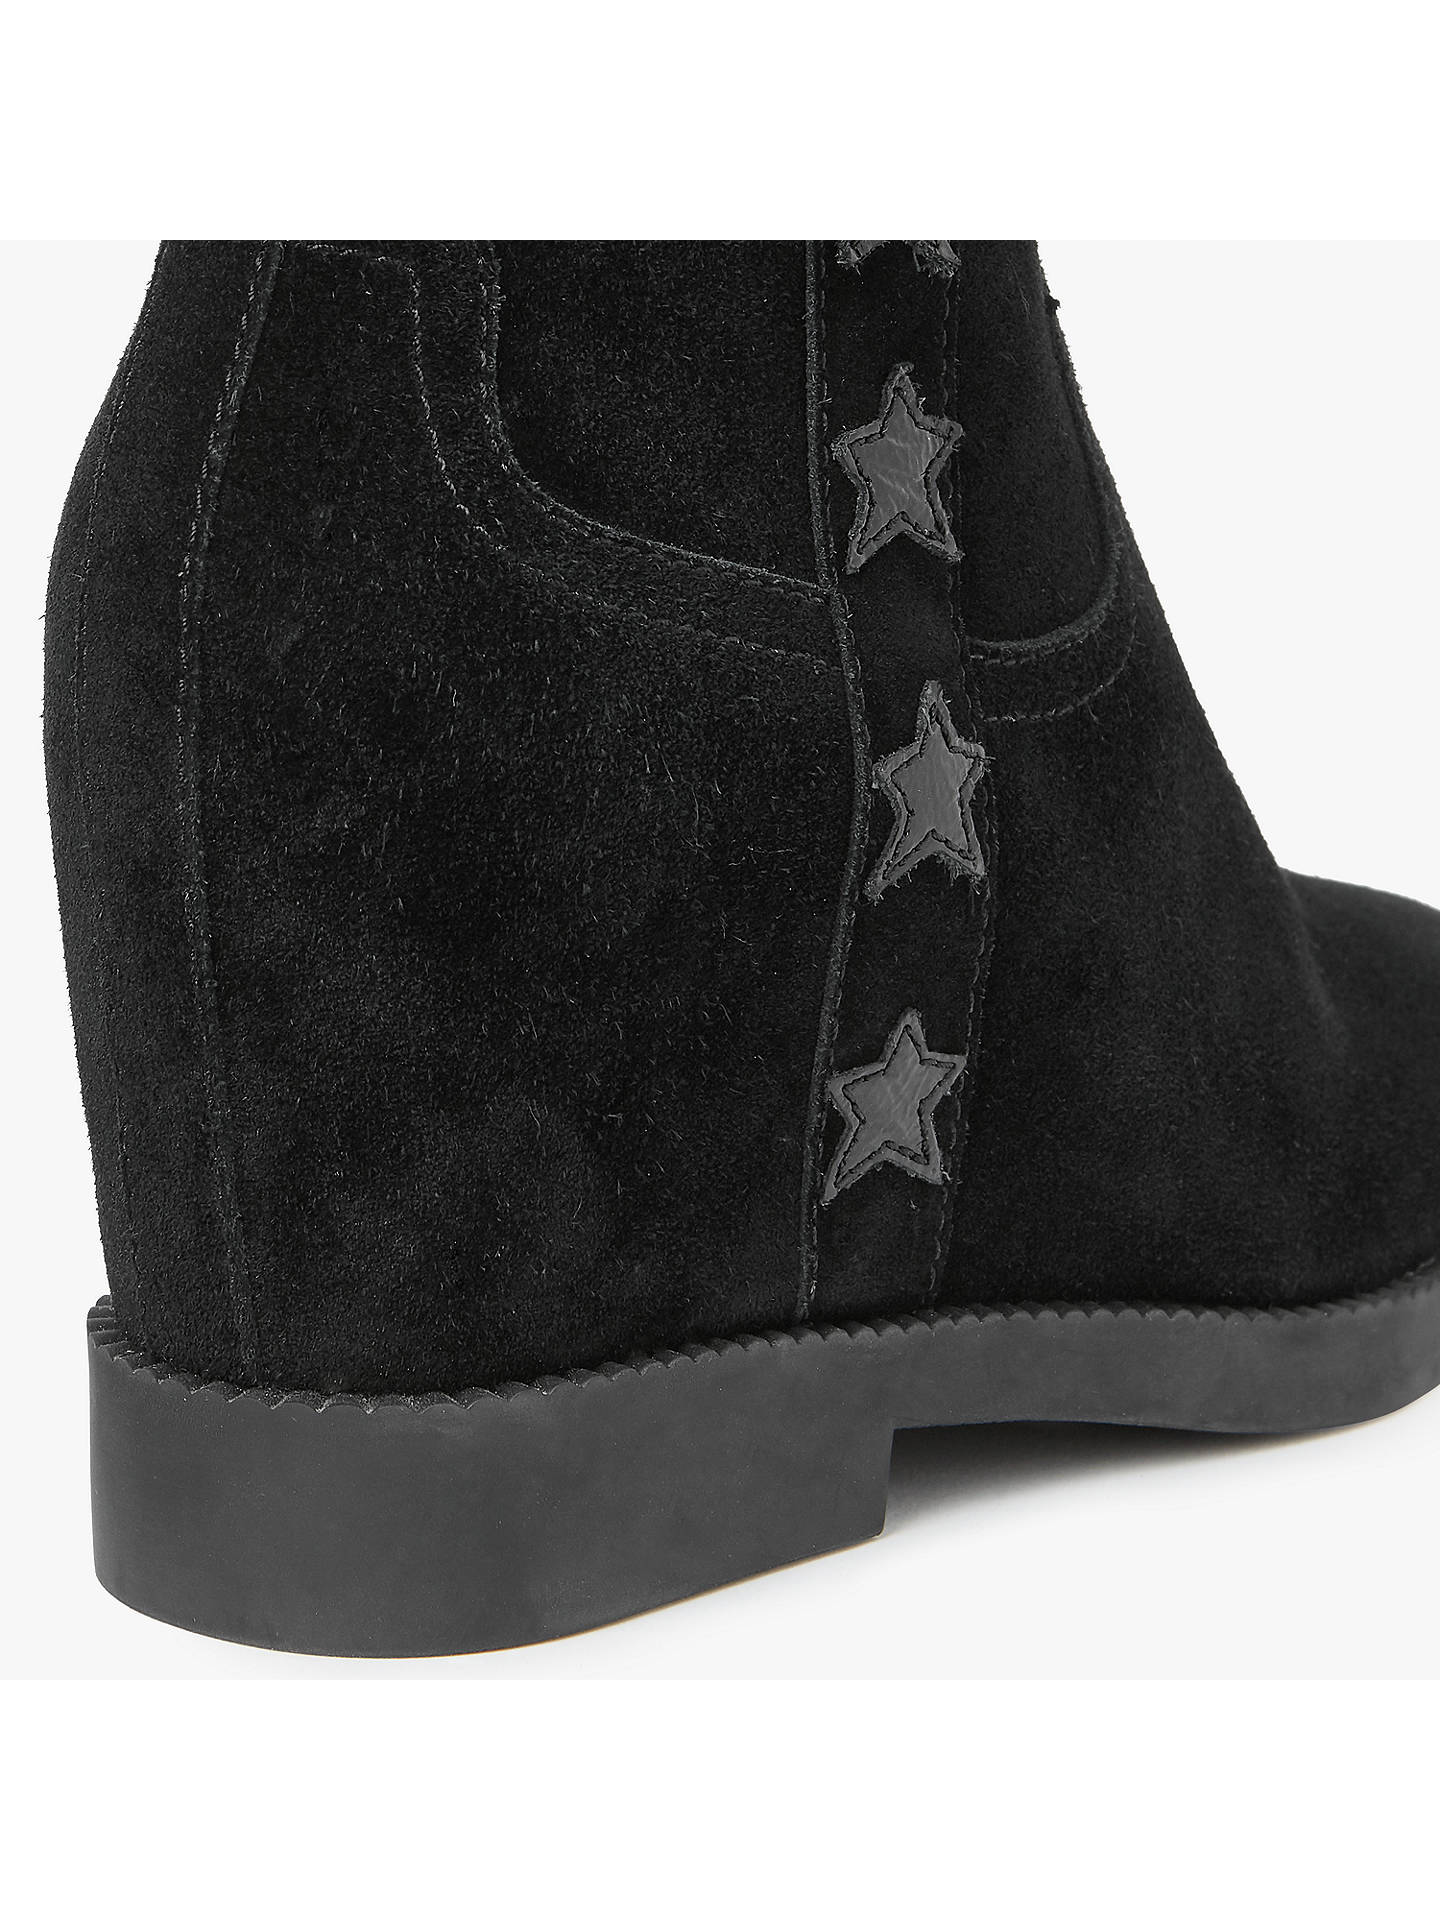 Buy Ash Goldie Concealed Wedge Heeled Ankle Boots, Black, 4 Online at johnlewis.com